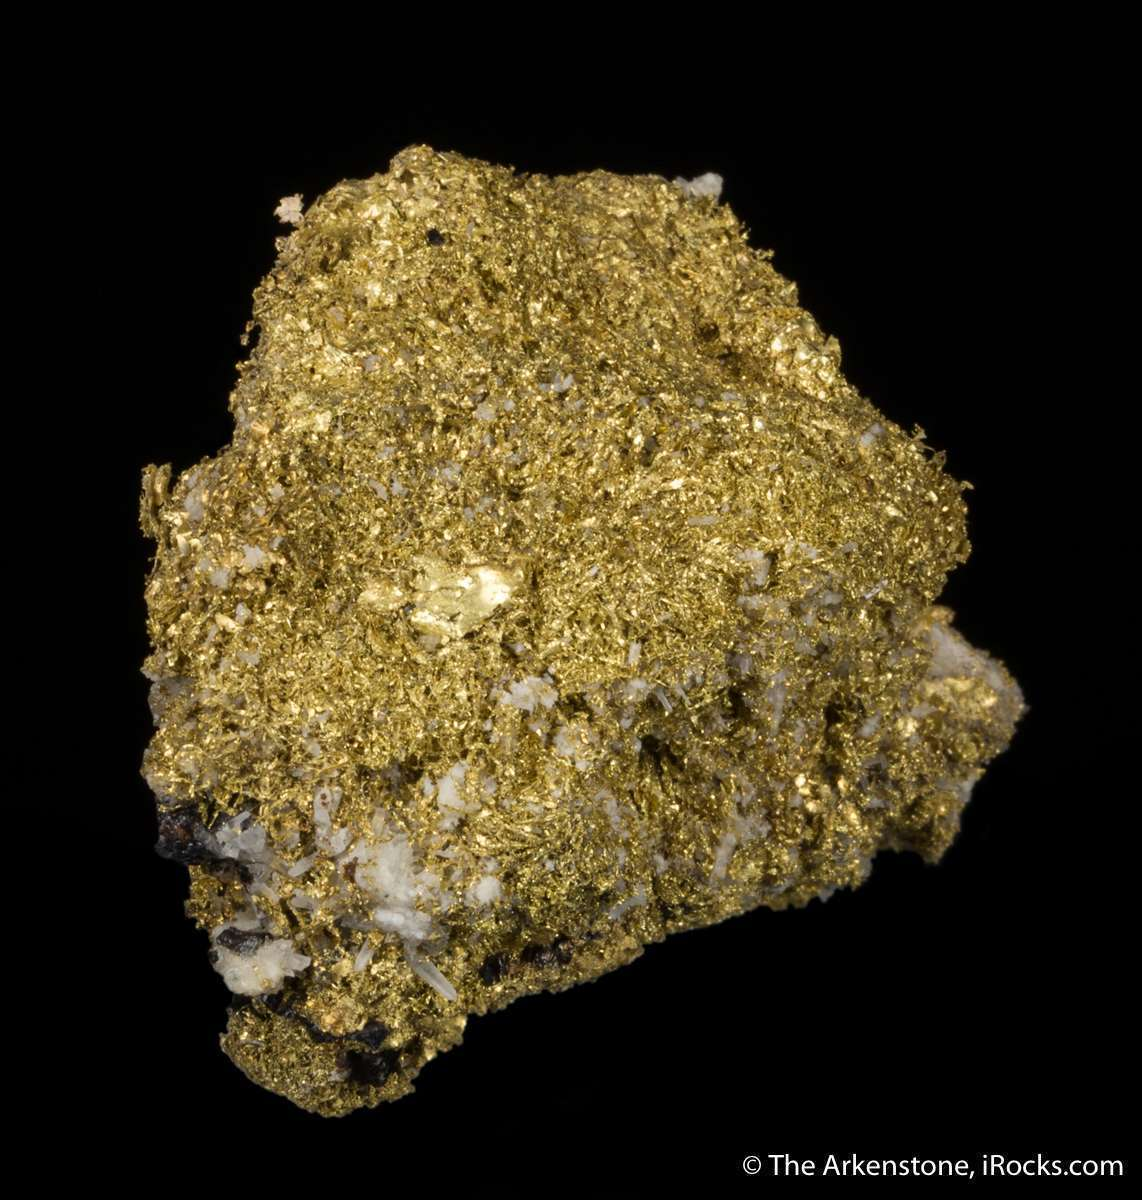 A solid mass lustrous rich buttery sponge gold soft crystals